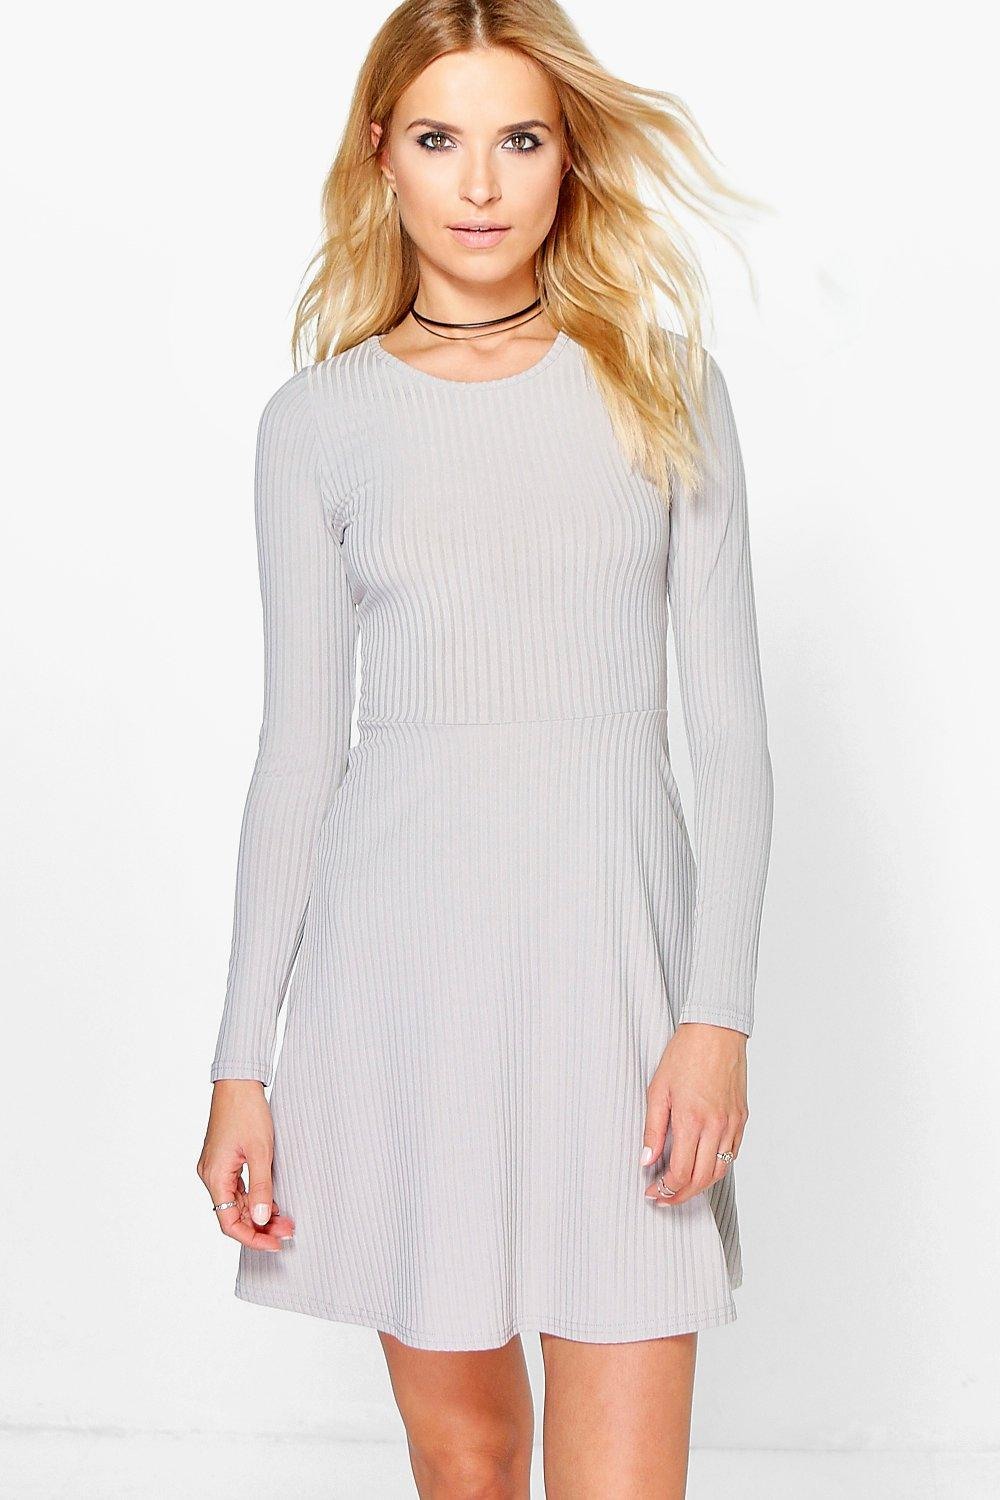 Lyst - Boohoo Maryana Long Sleeved Ribbed Skater Dress in Gray 06ba0d171